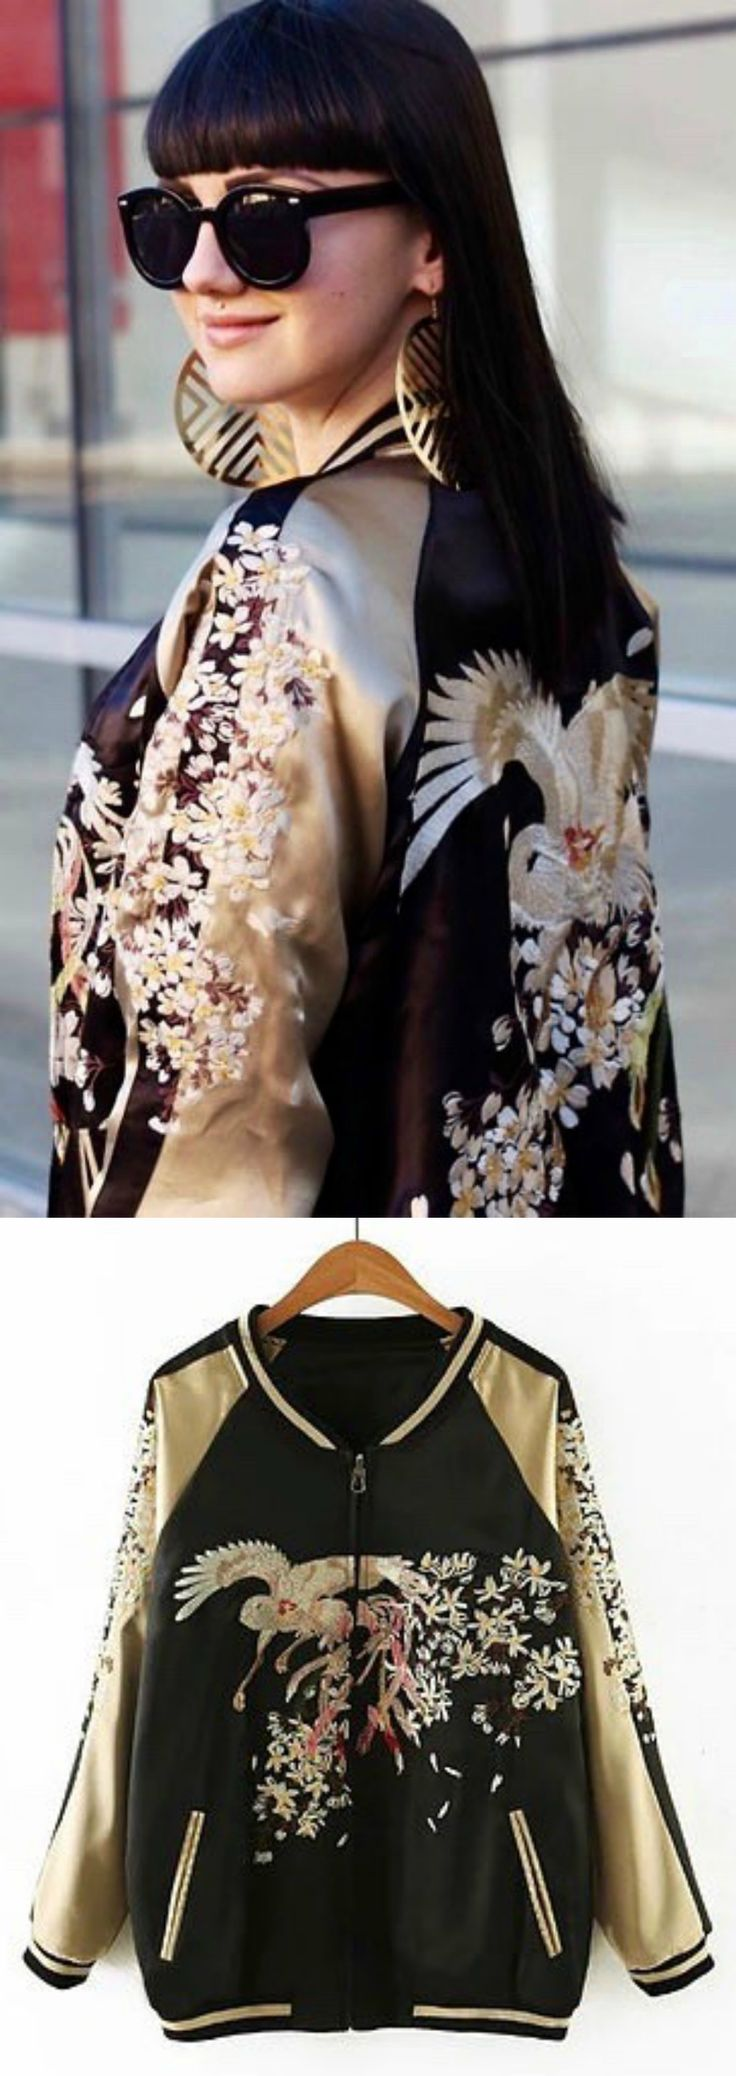 An Embroidery Bomber Jacket is now available at $75 from Pasaboho. ❤️ This Fashion Jacket exhibit unique bold embroidered patterns with sakura flowers. ❤️ boho fashion :: gypsy style :: hippie chic :: boho chic :: outfit ideas :: boho clothing :: free spirit :: fashion trend :: flowers :: floral :: lace :: summer :: fabulous :: love :: street style :: fashion style :: boho style :: bohemian :: modern vintage :: ethnic tribal :: boho bags :: embroidery dress :: skirt :: bohemian :: boho trend